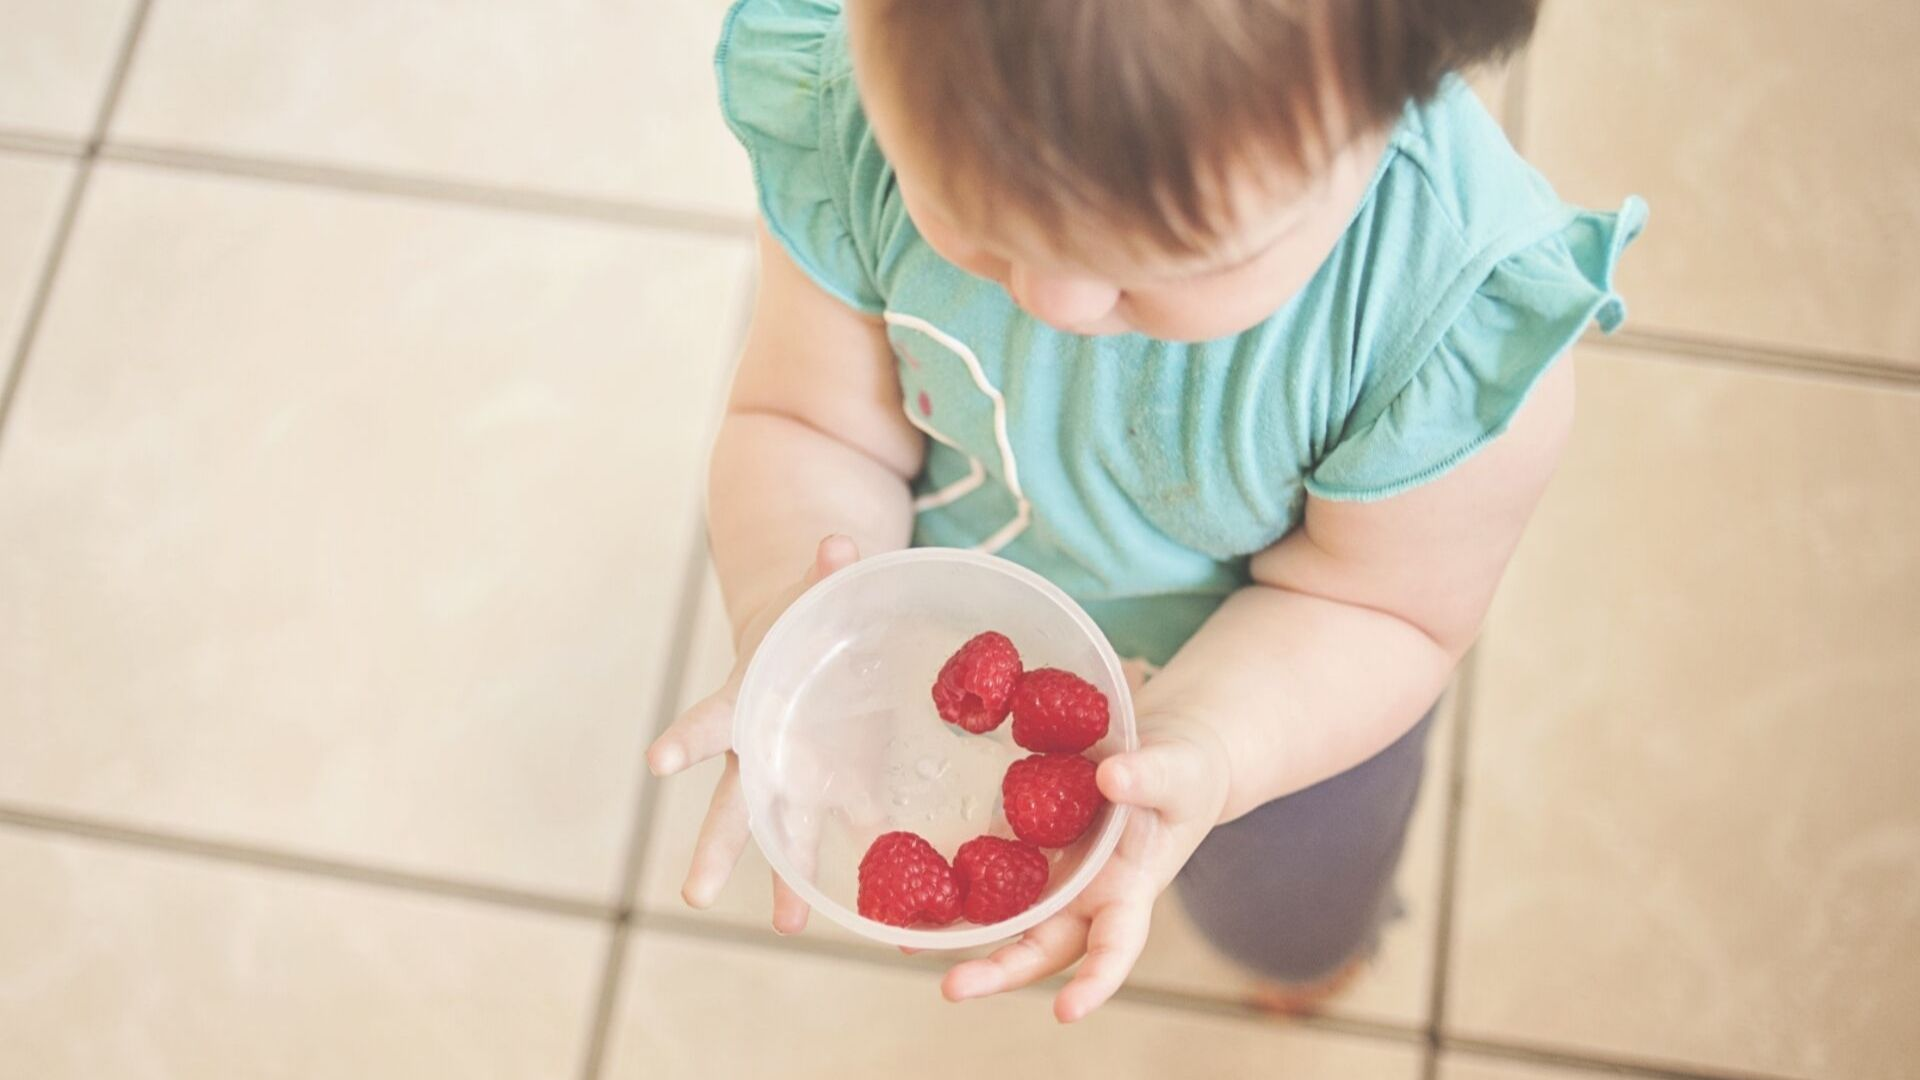 6 Helpful Tips to Get Your Kids Eating Healthier